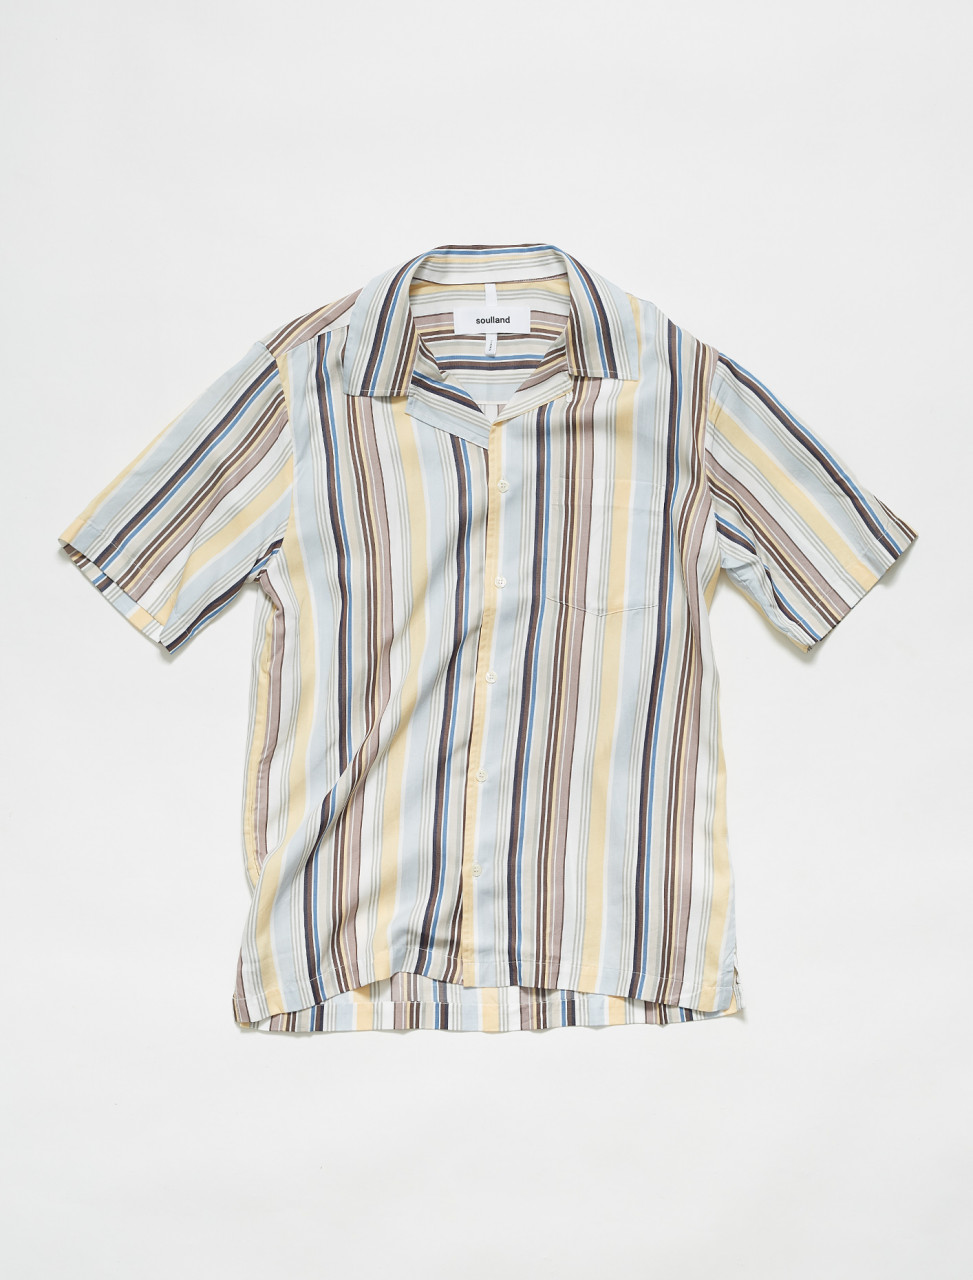 159-01-04-011 SOULLAND ORSON SHIRT MULTI